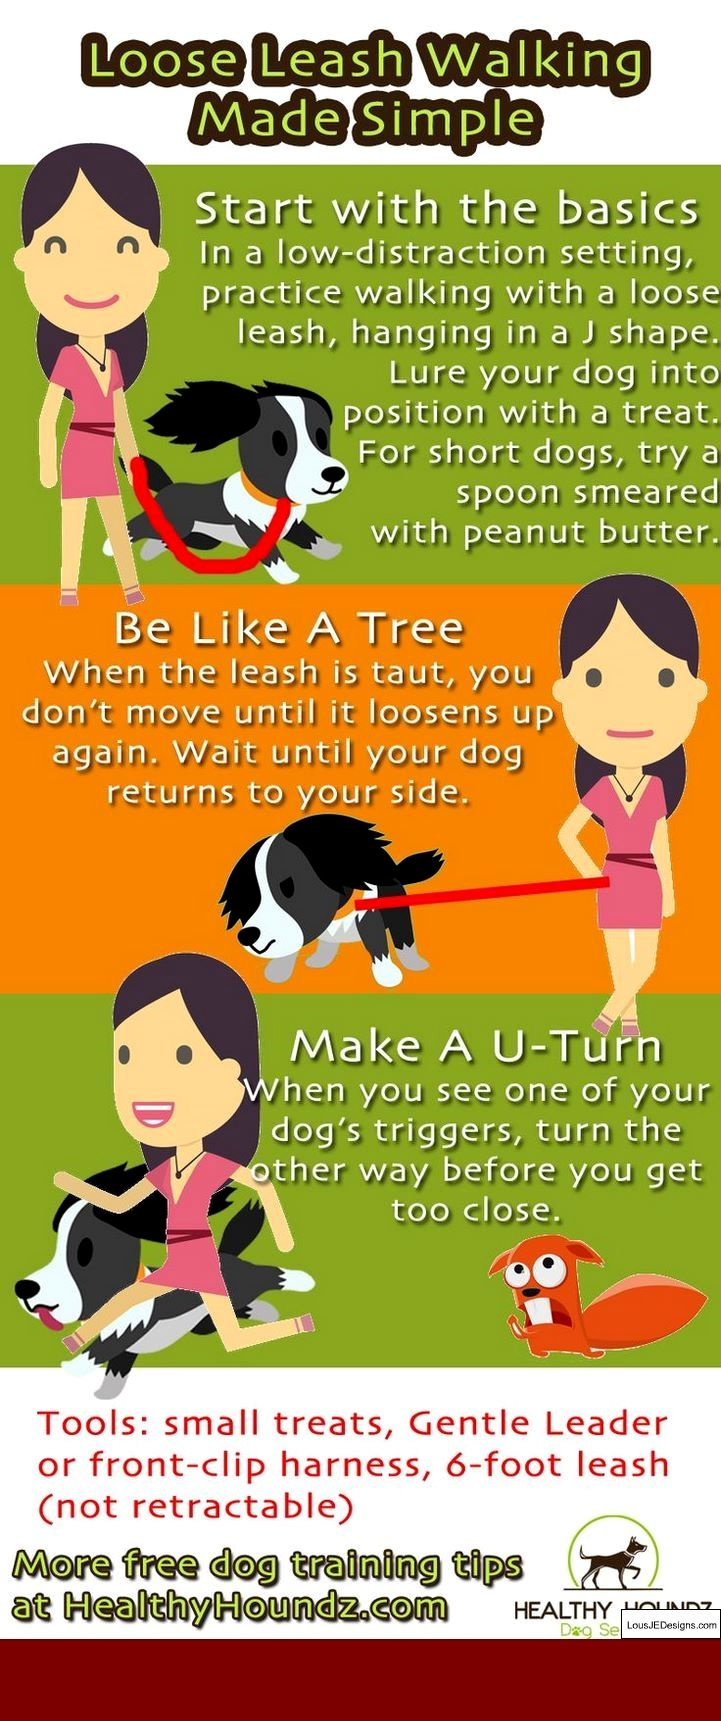 How To Train A 1 Year Old Dog To Pee Outside And Pics Of Quick Potty Training Tips For Dogs Tip 8771196 Dog Training Dog Training Tips Training Your Dog